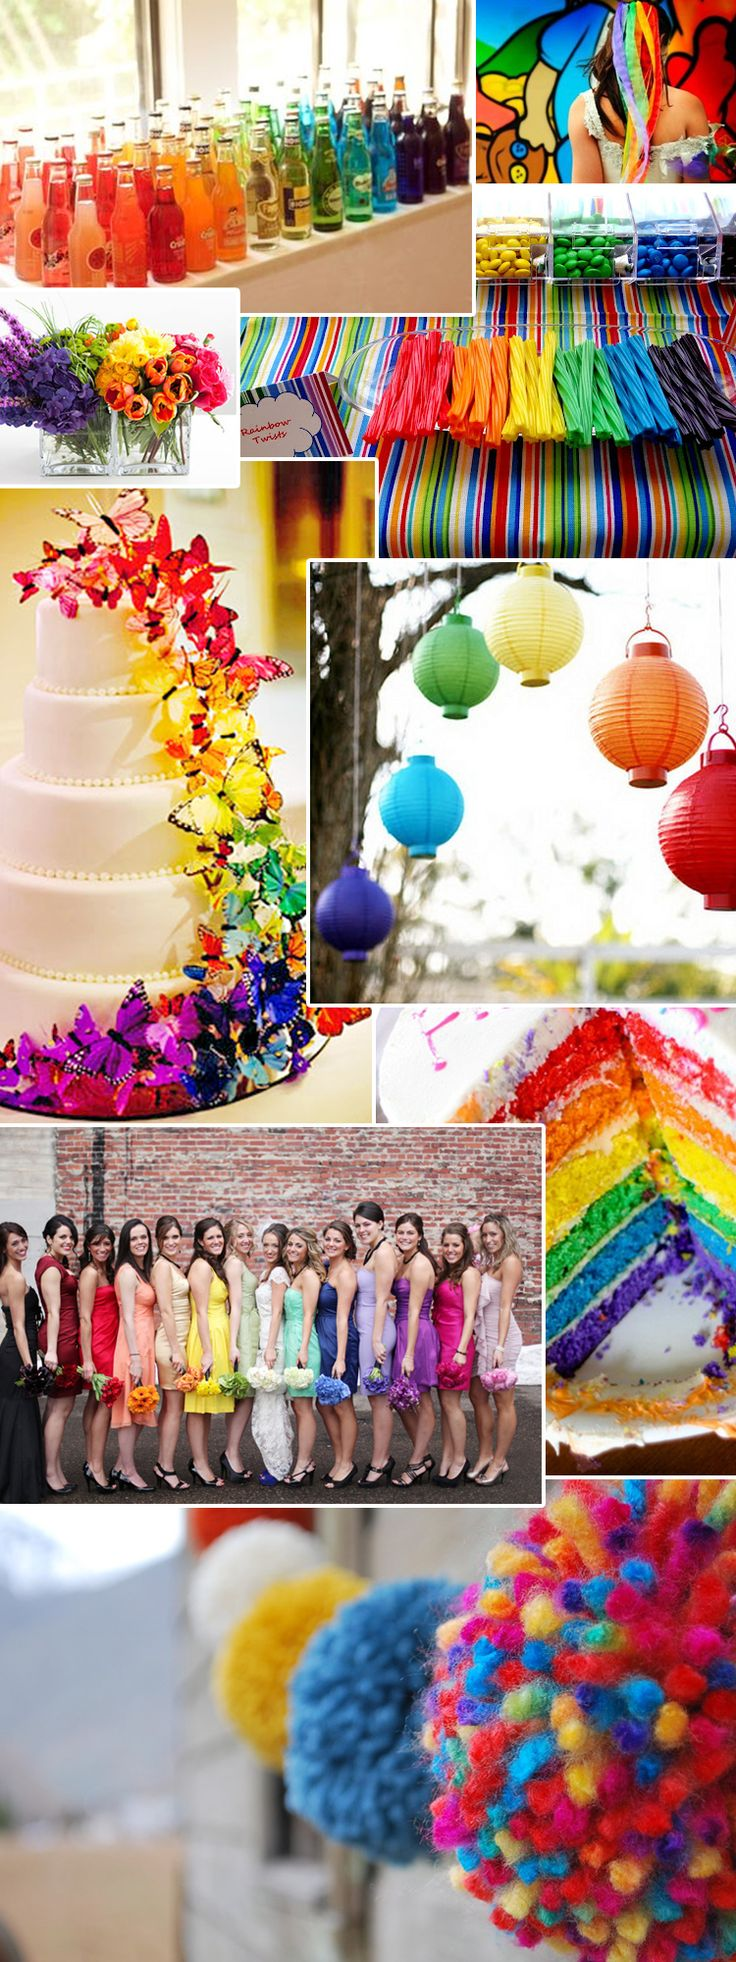 colorful wedding - Buscar con Google